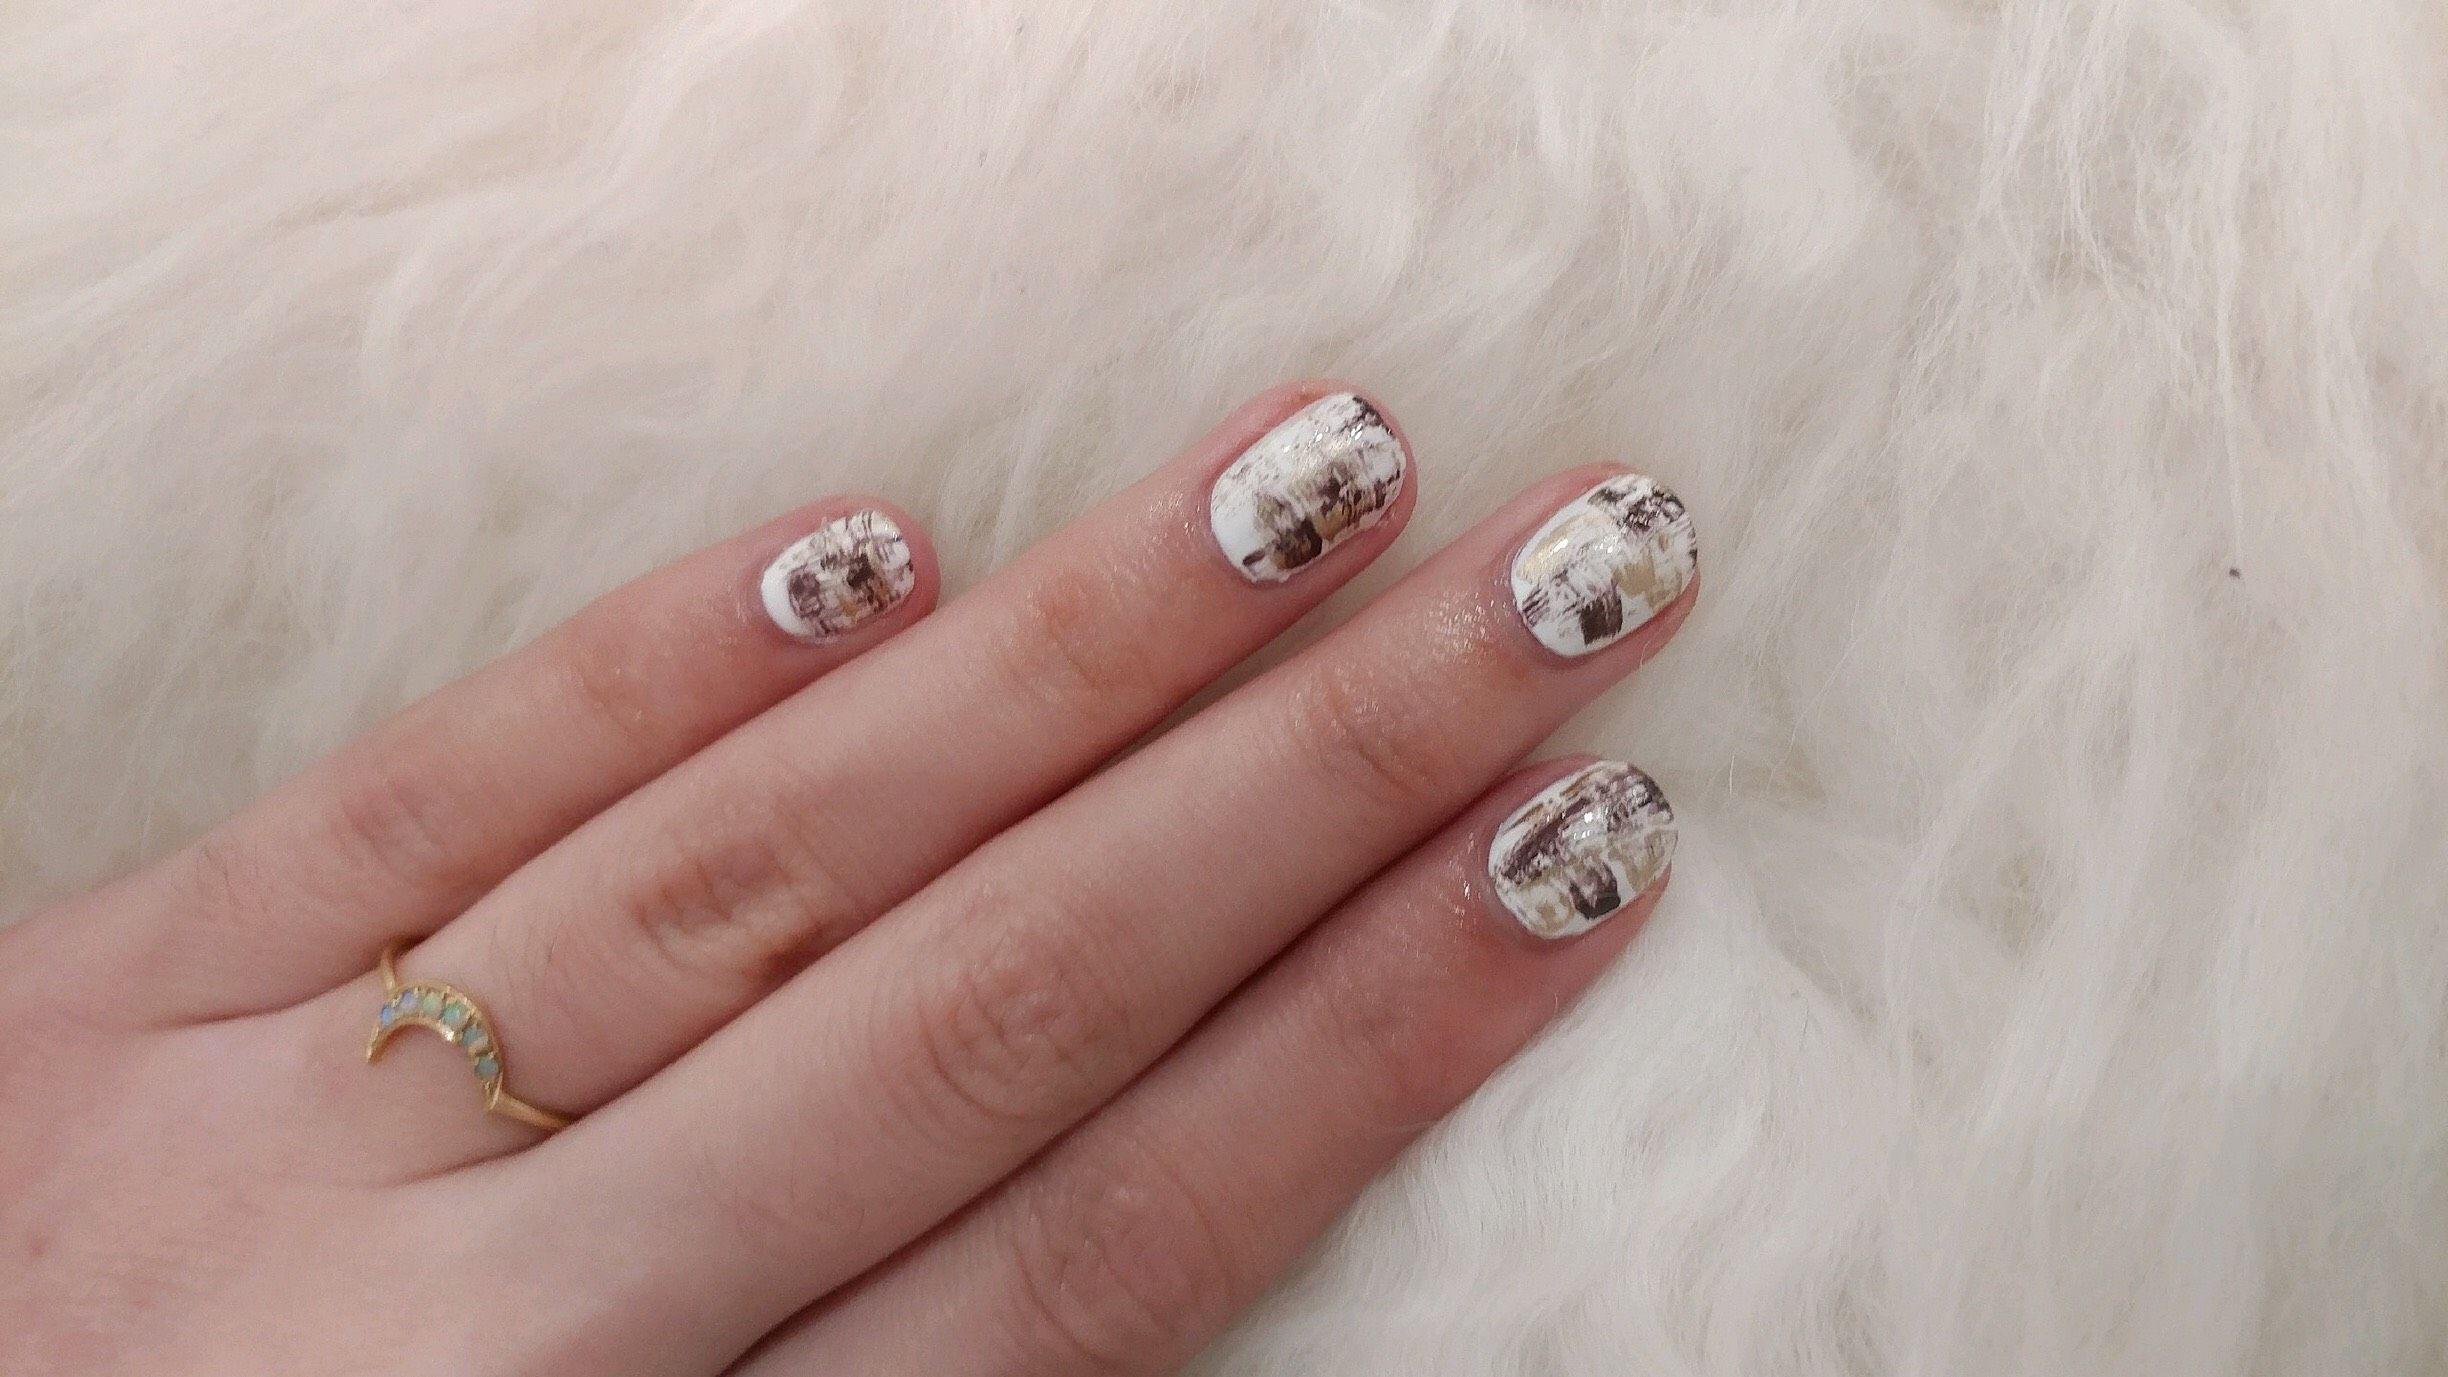 Thumbnail for The super-easy DIY nail art that will take you 10 minutes start-to-finish